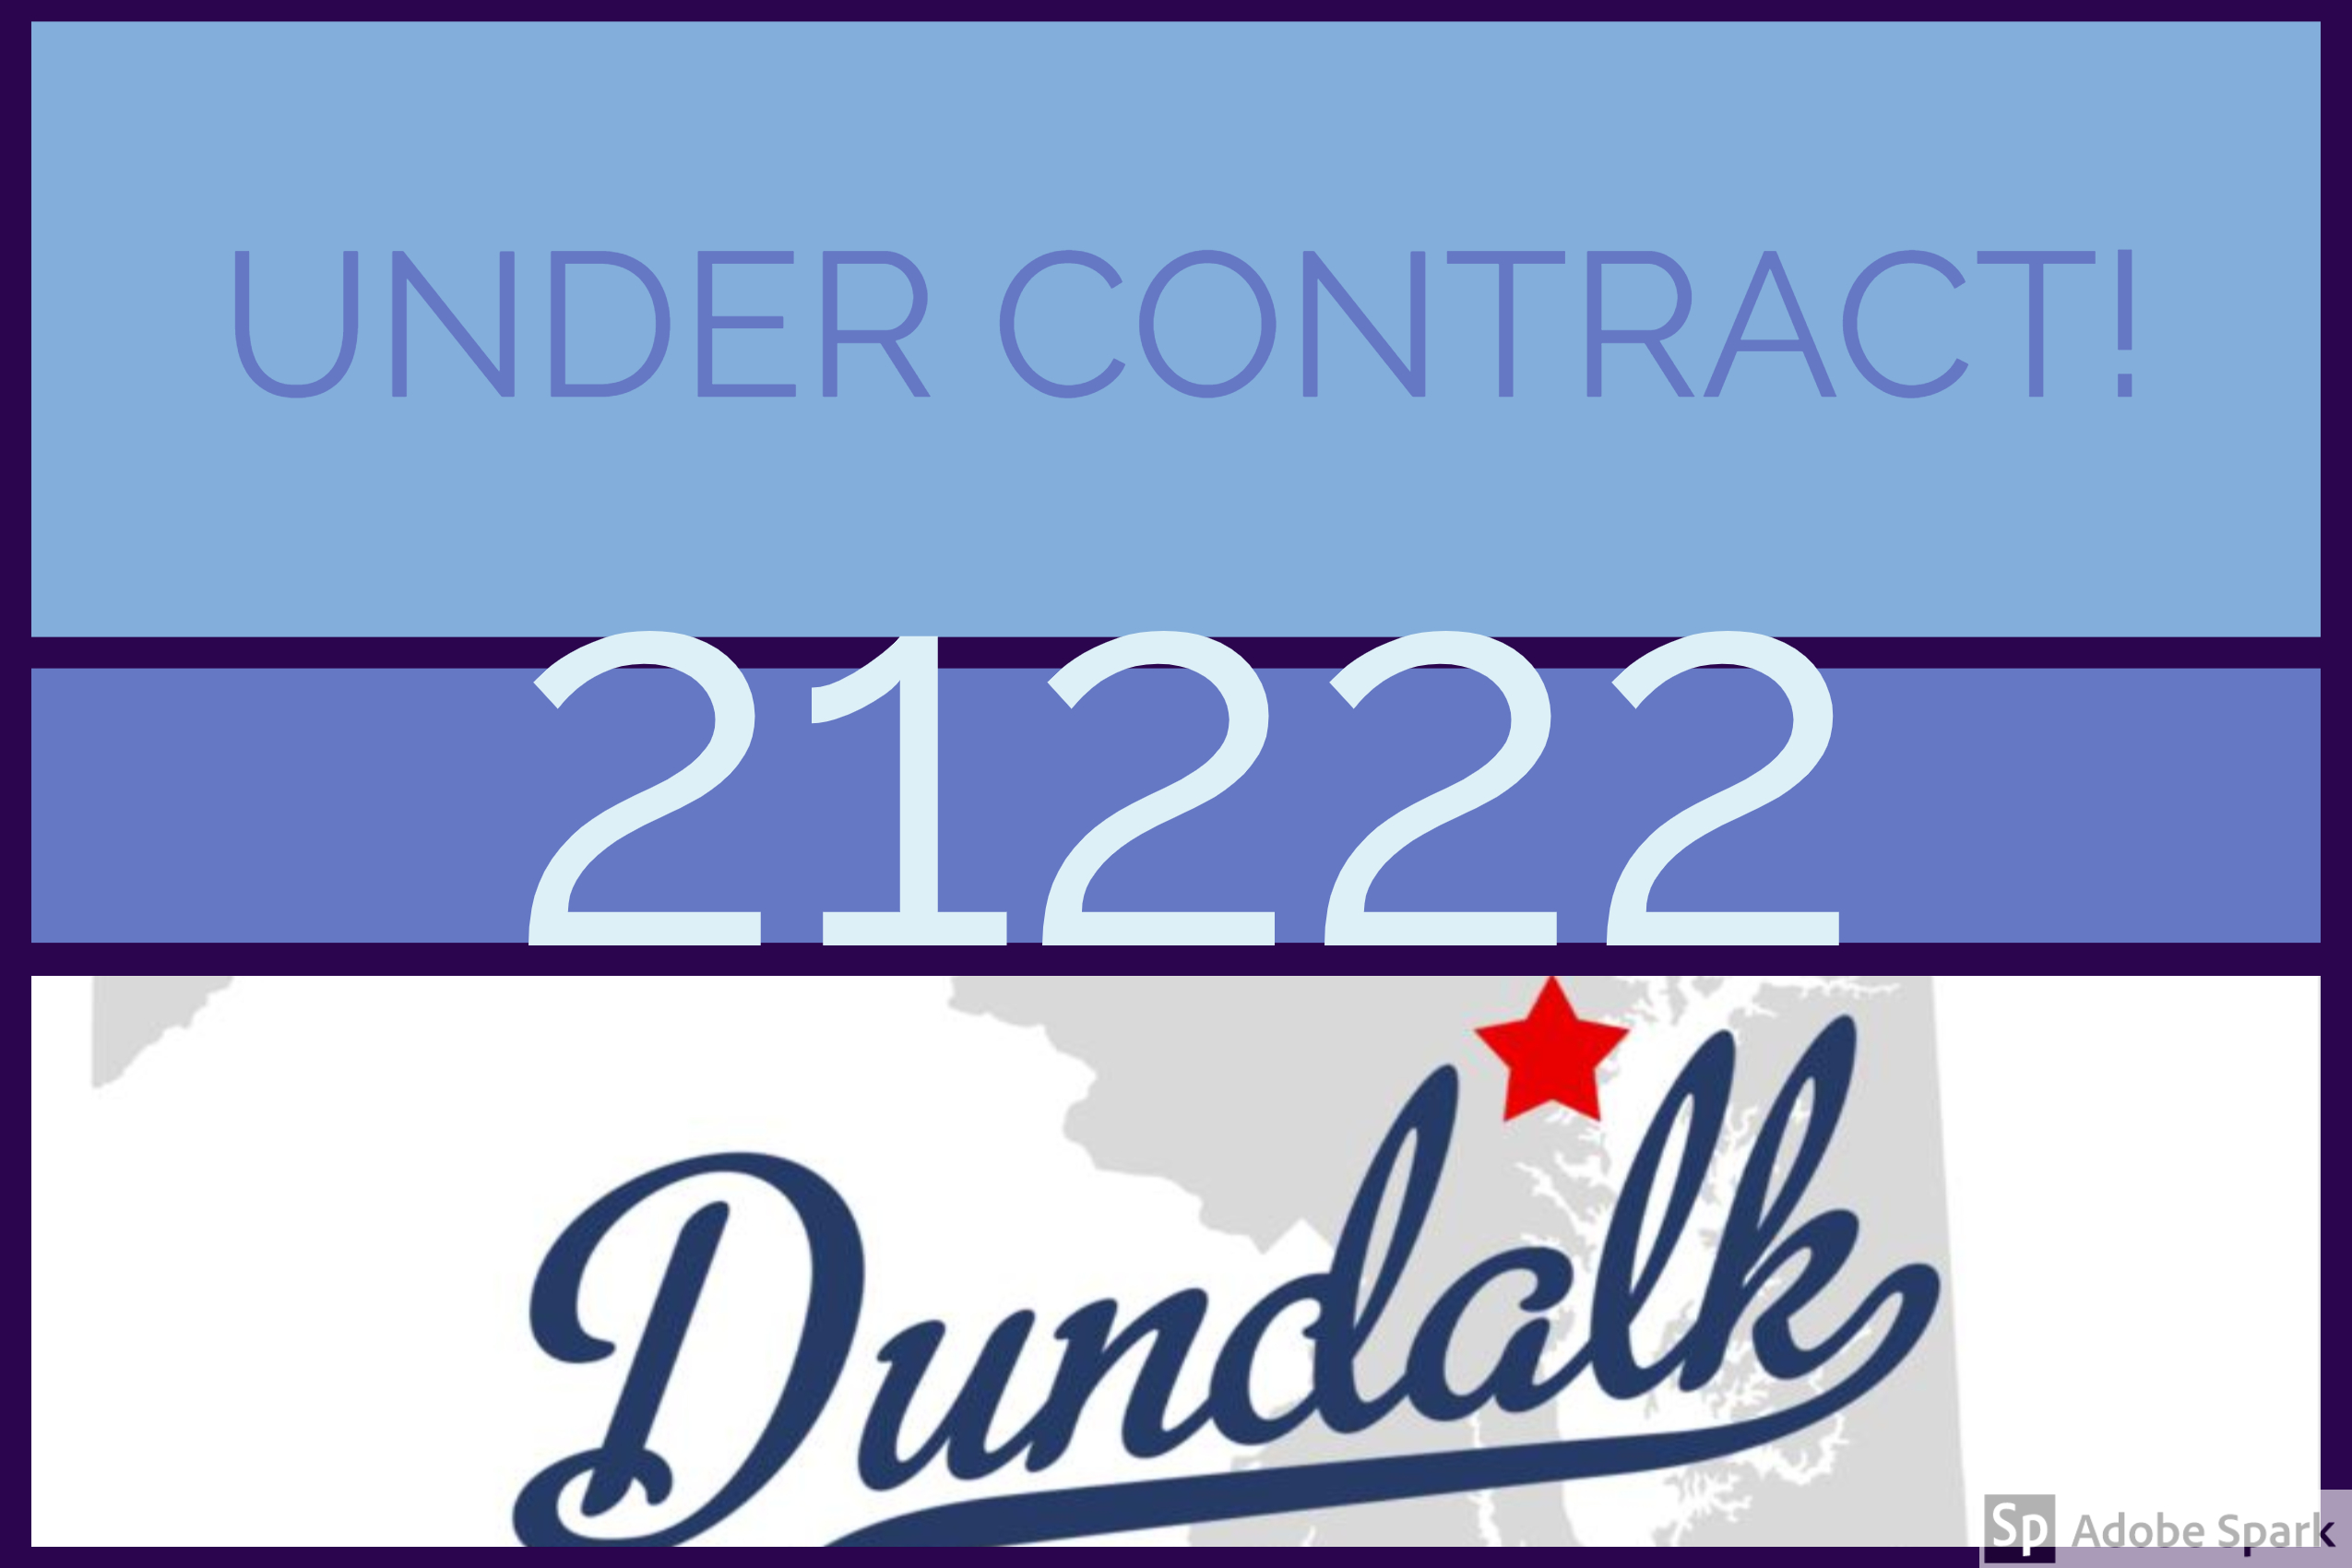 Under Contract in Dundalk!